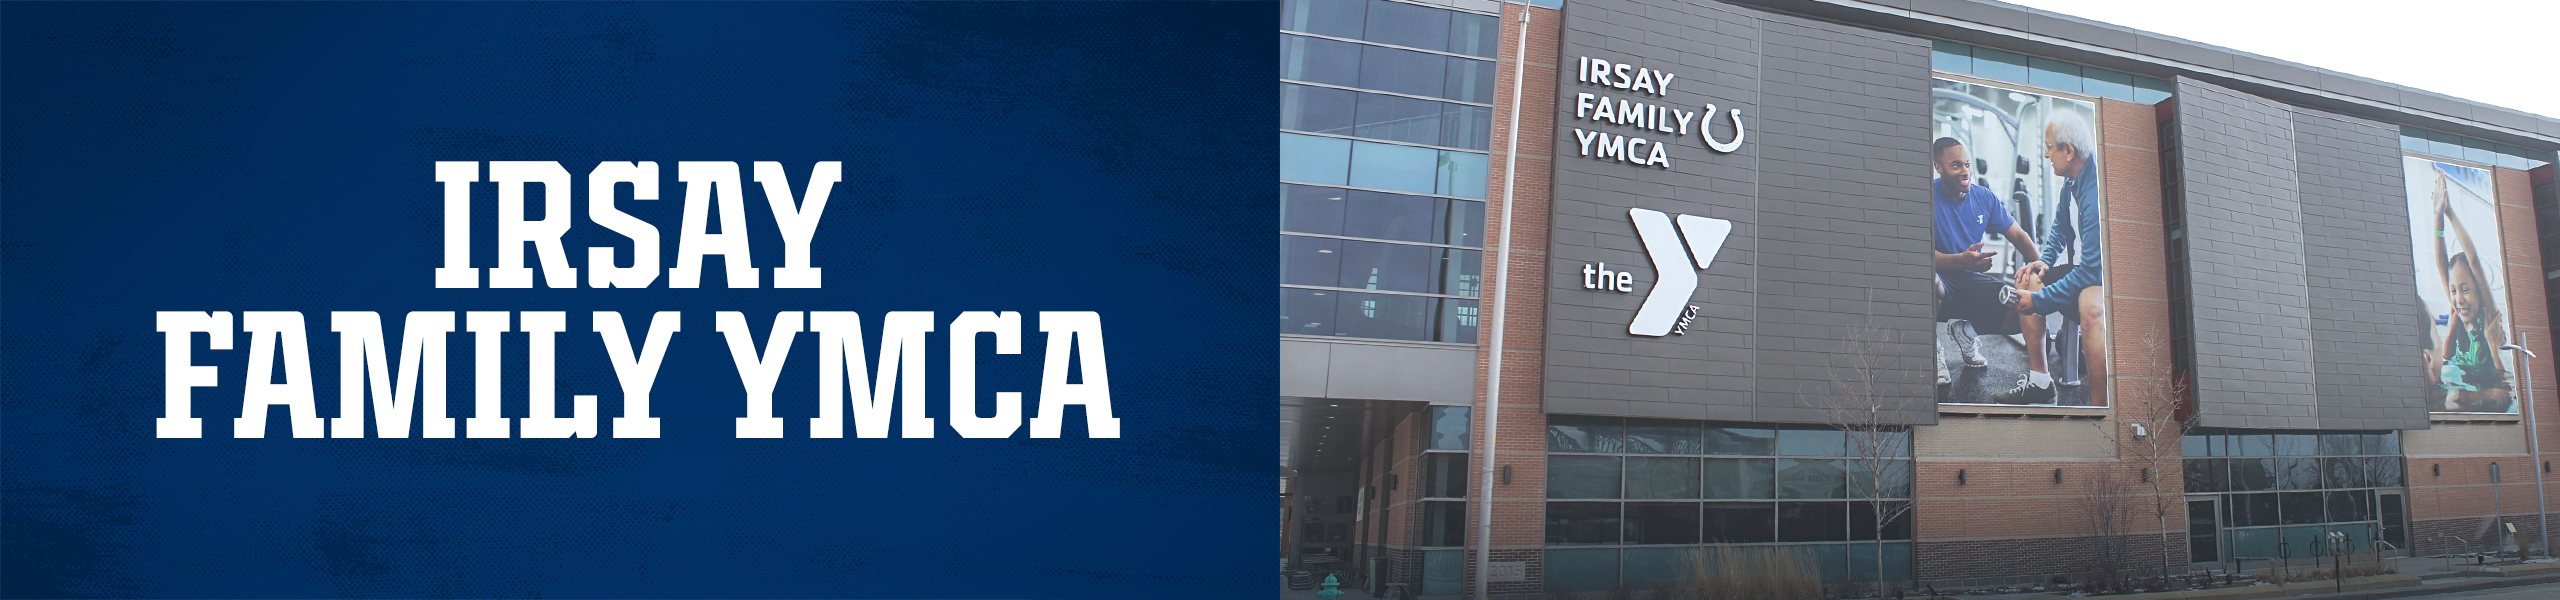 Indianapolis Colts Irsay Family YMCA